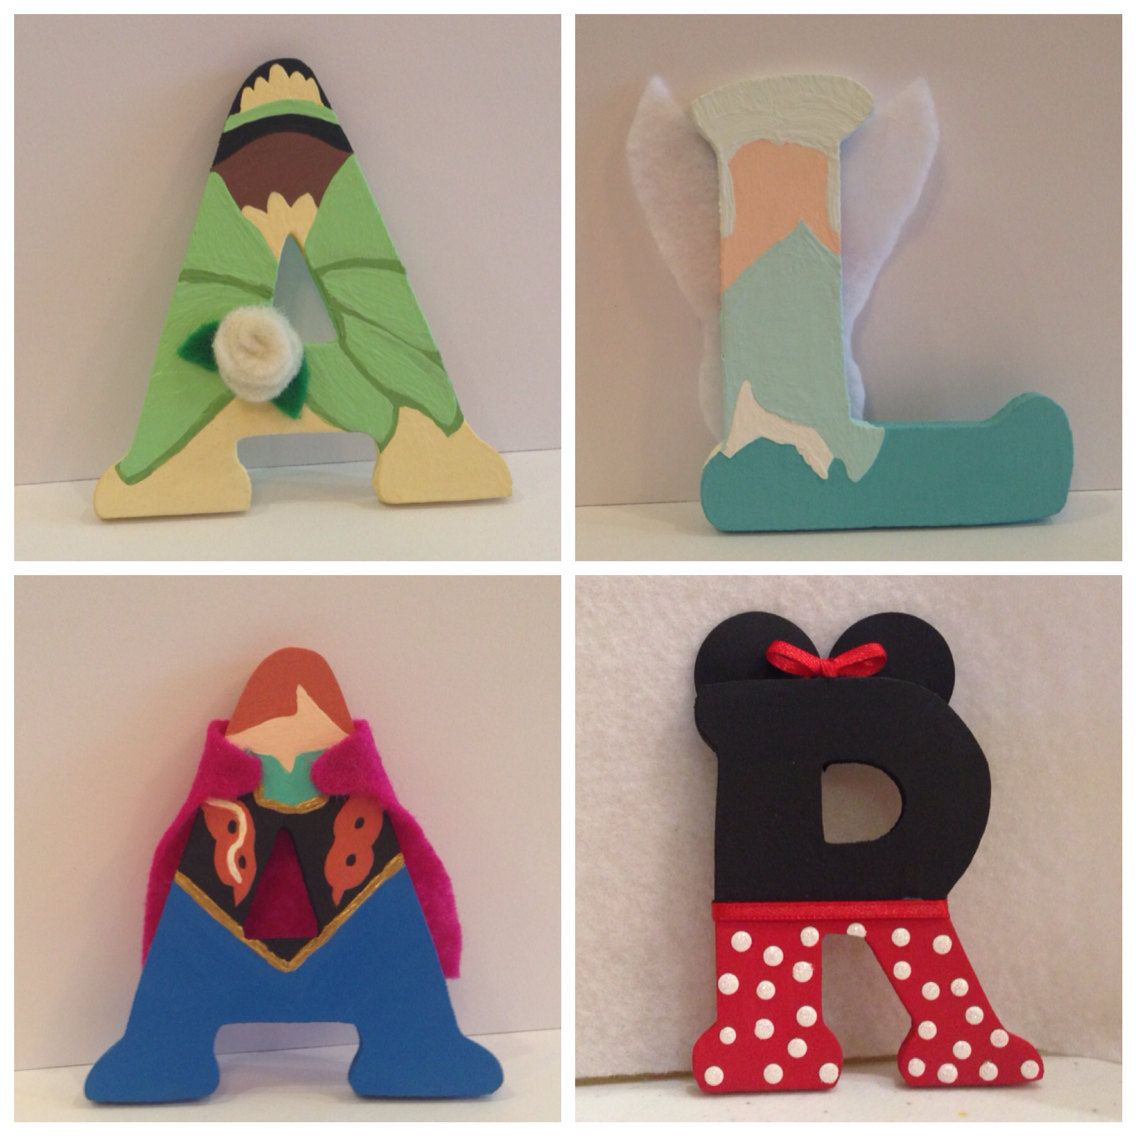 Wooden letters for crafts - Disney Wooden Letters Each Letter Is 3inches Tall Choose From Frozen Beauty Beast Minnie Winnie The Pooh Characters And More Girls